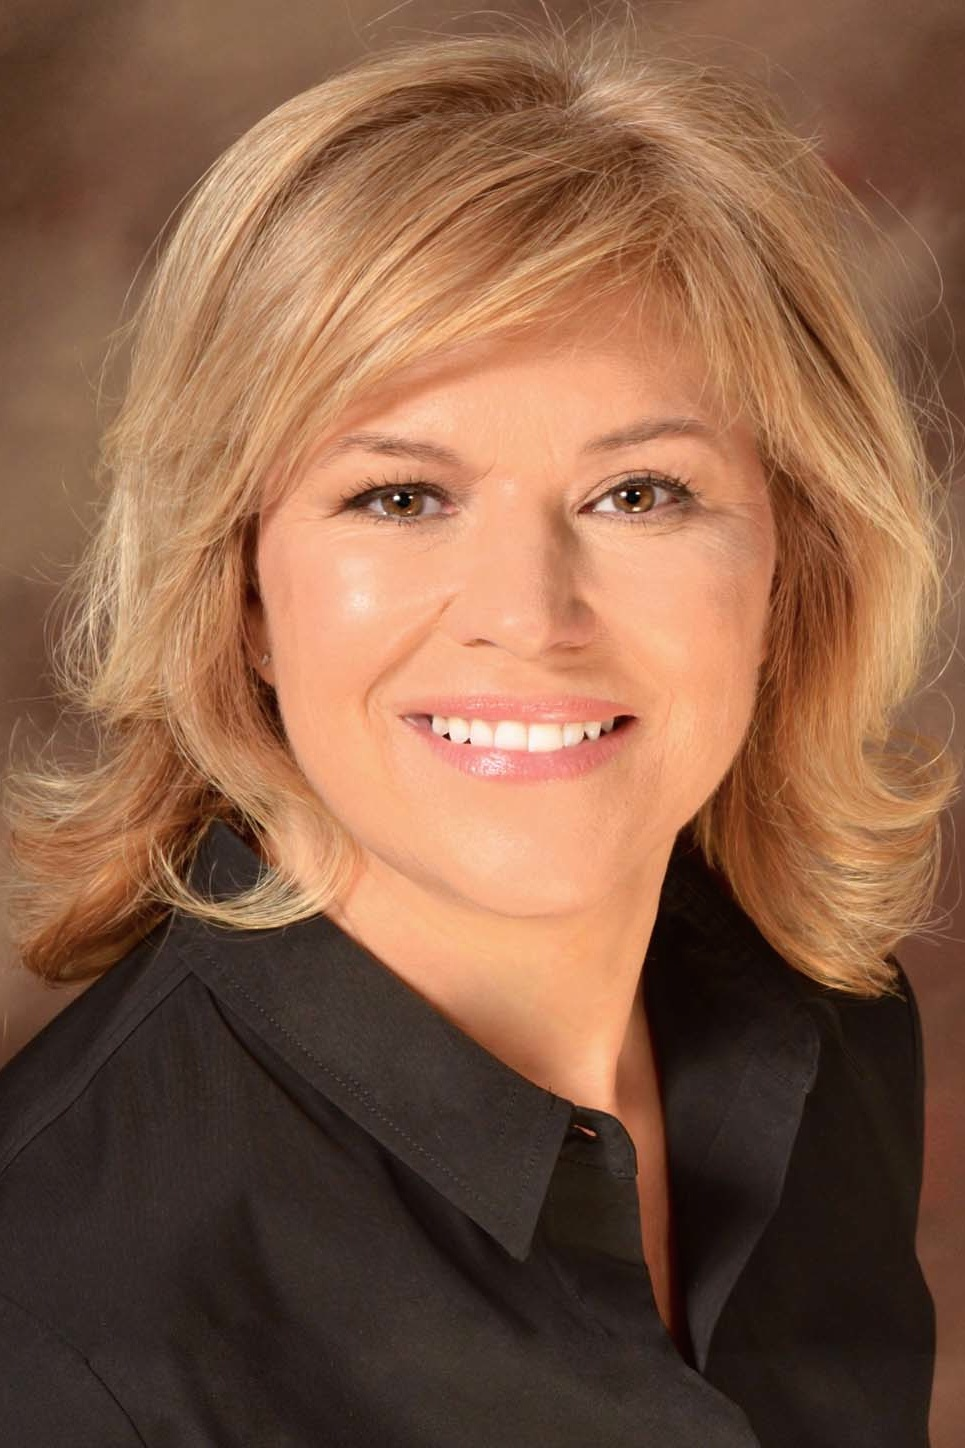 Five Star Automotive >> Award-Winning New Jersey Realtor, Laura Sulborski, Wins the Five Star Award and Moves to Keller ...